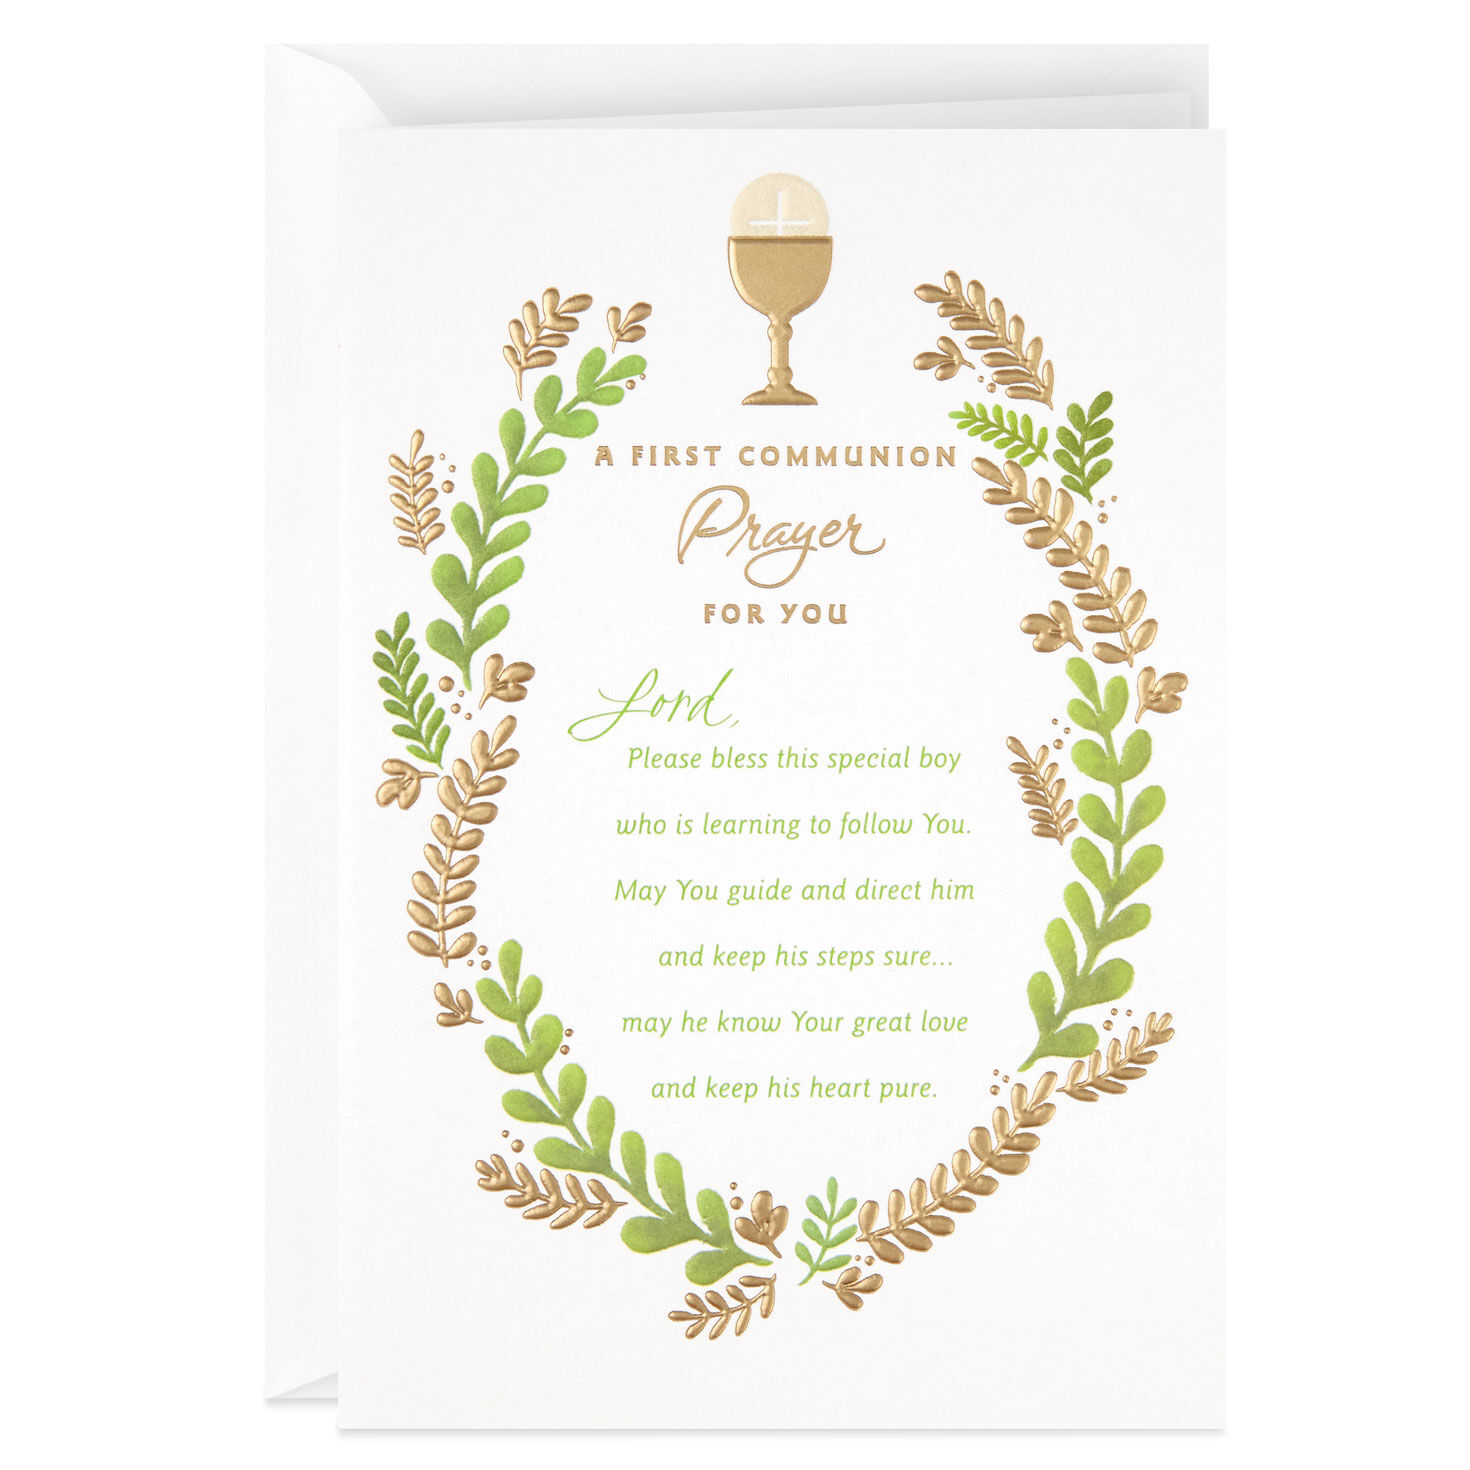 photograph about First Holy Communion Cards Printable Free referred to as To start with Communion Playing cards Hallmark